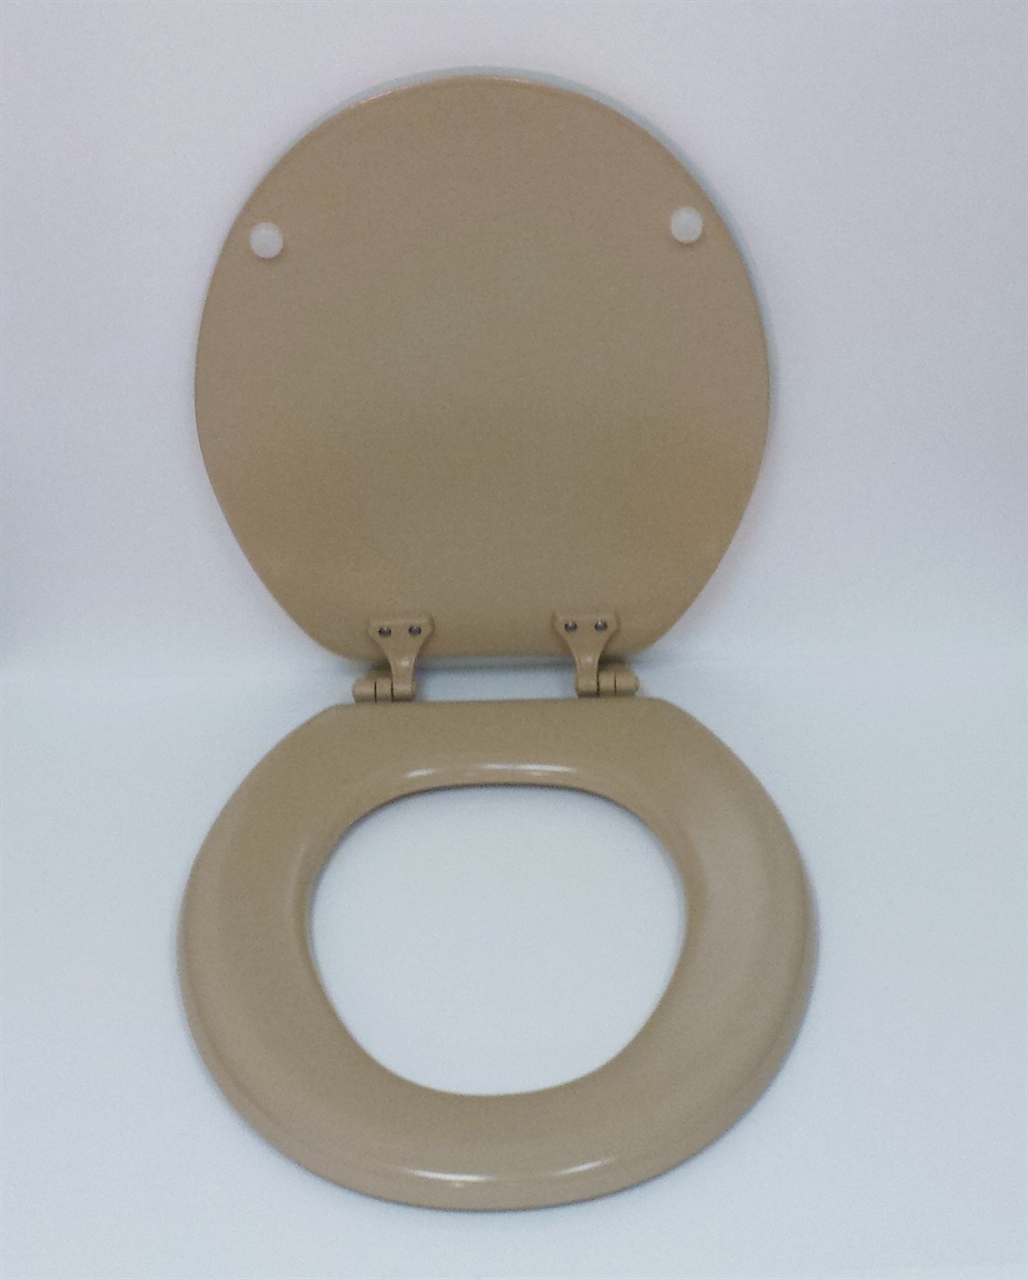 Phenomenal Mexican Sand Toilet Seat Round Bowl With Cover Caraccident5 Cool Chair Designs And Ideas Caraccident5Info